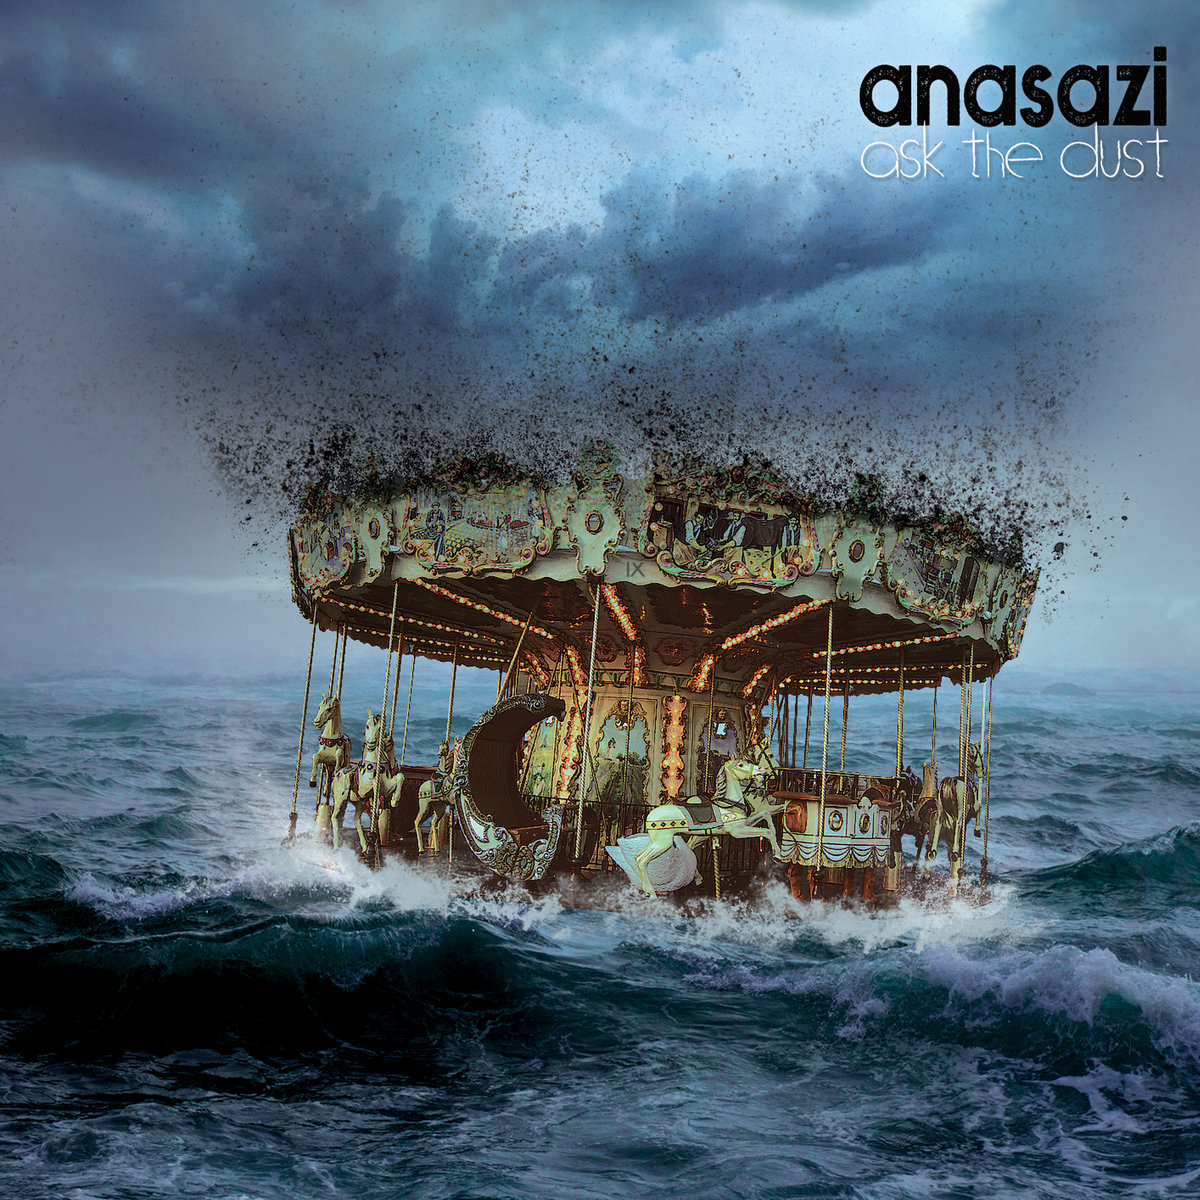 anasazi: ask the dust